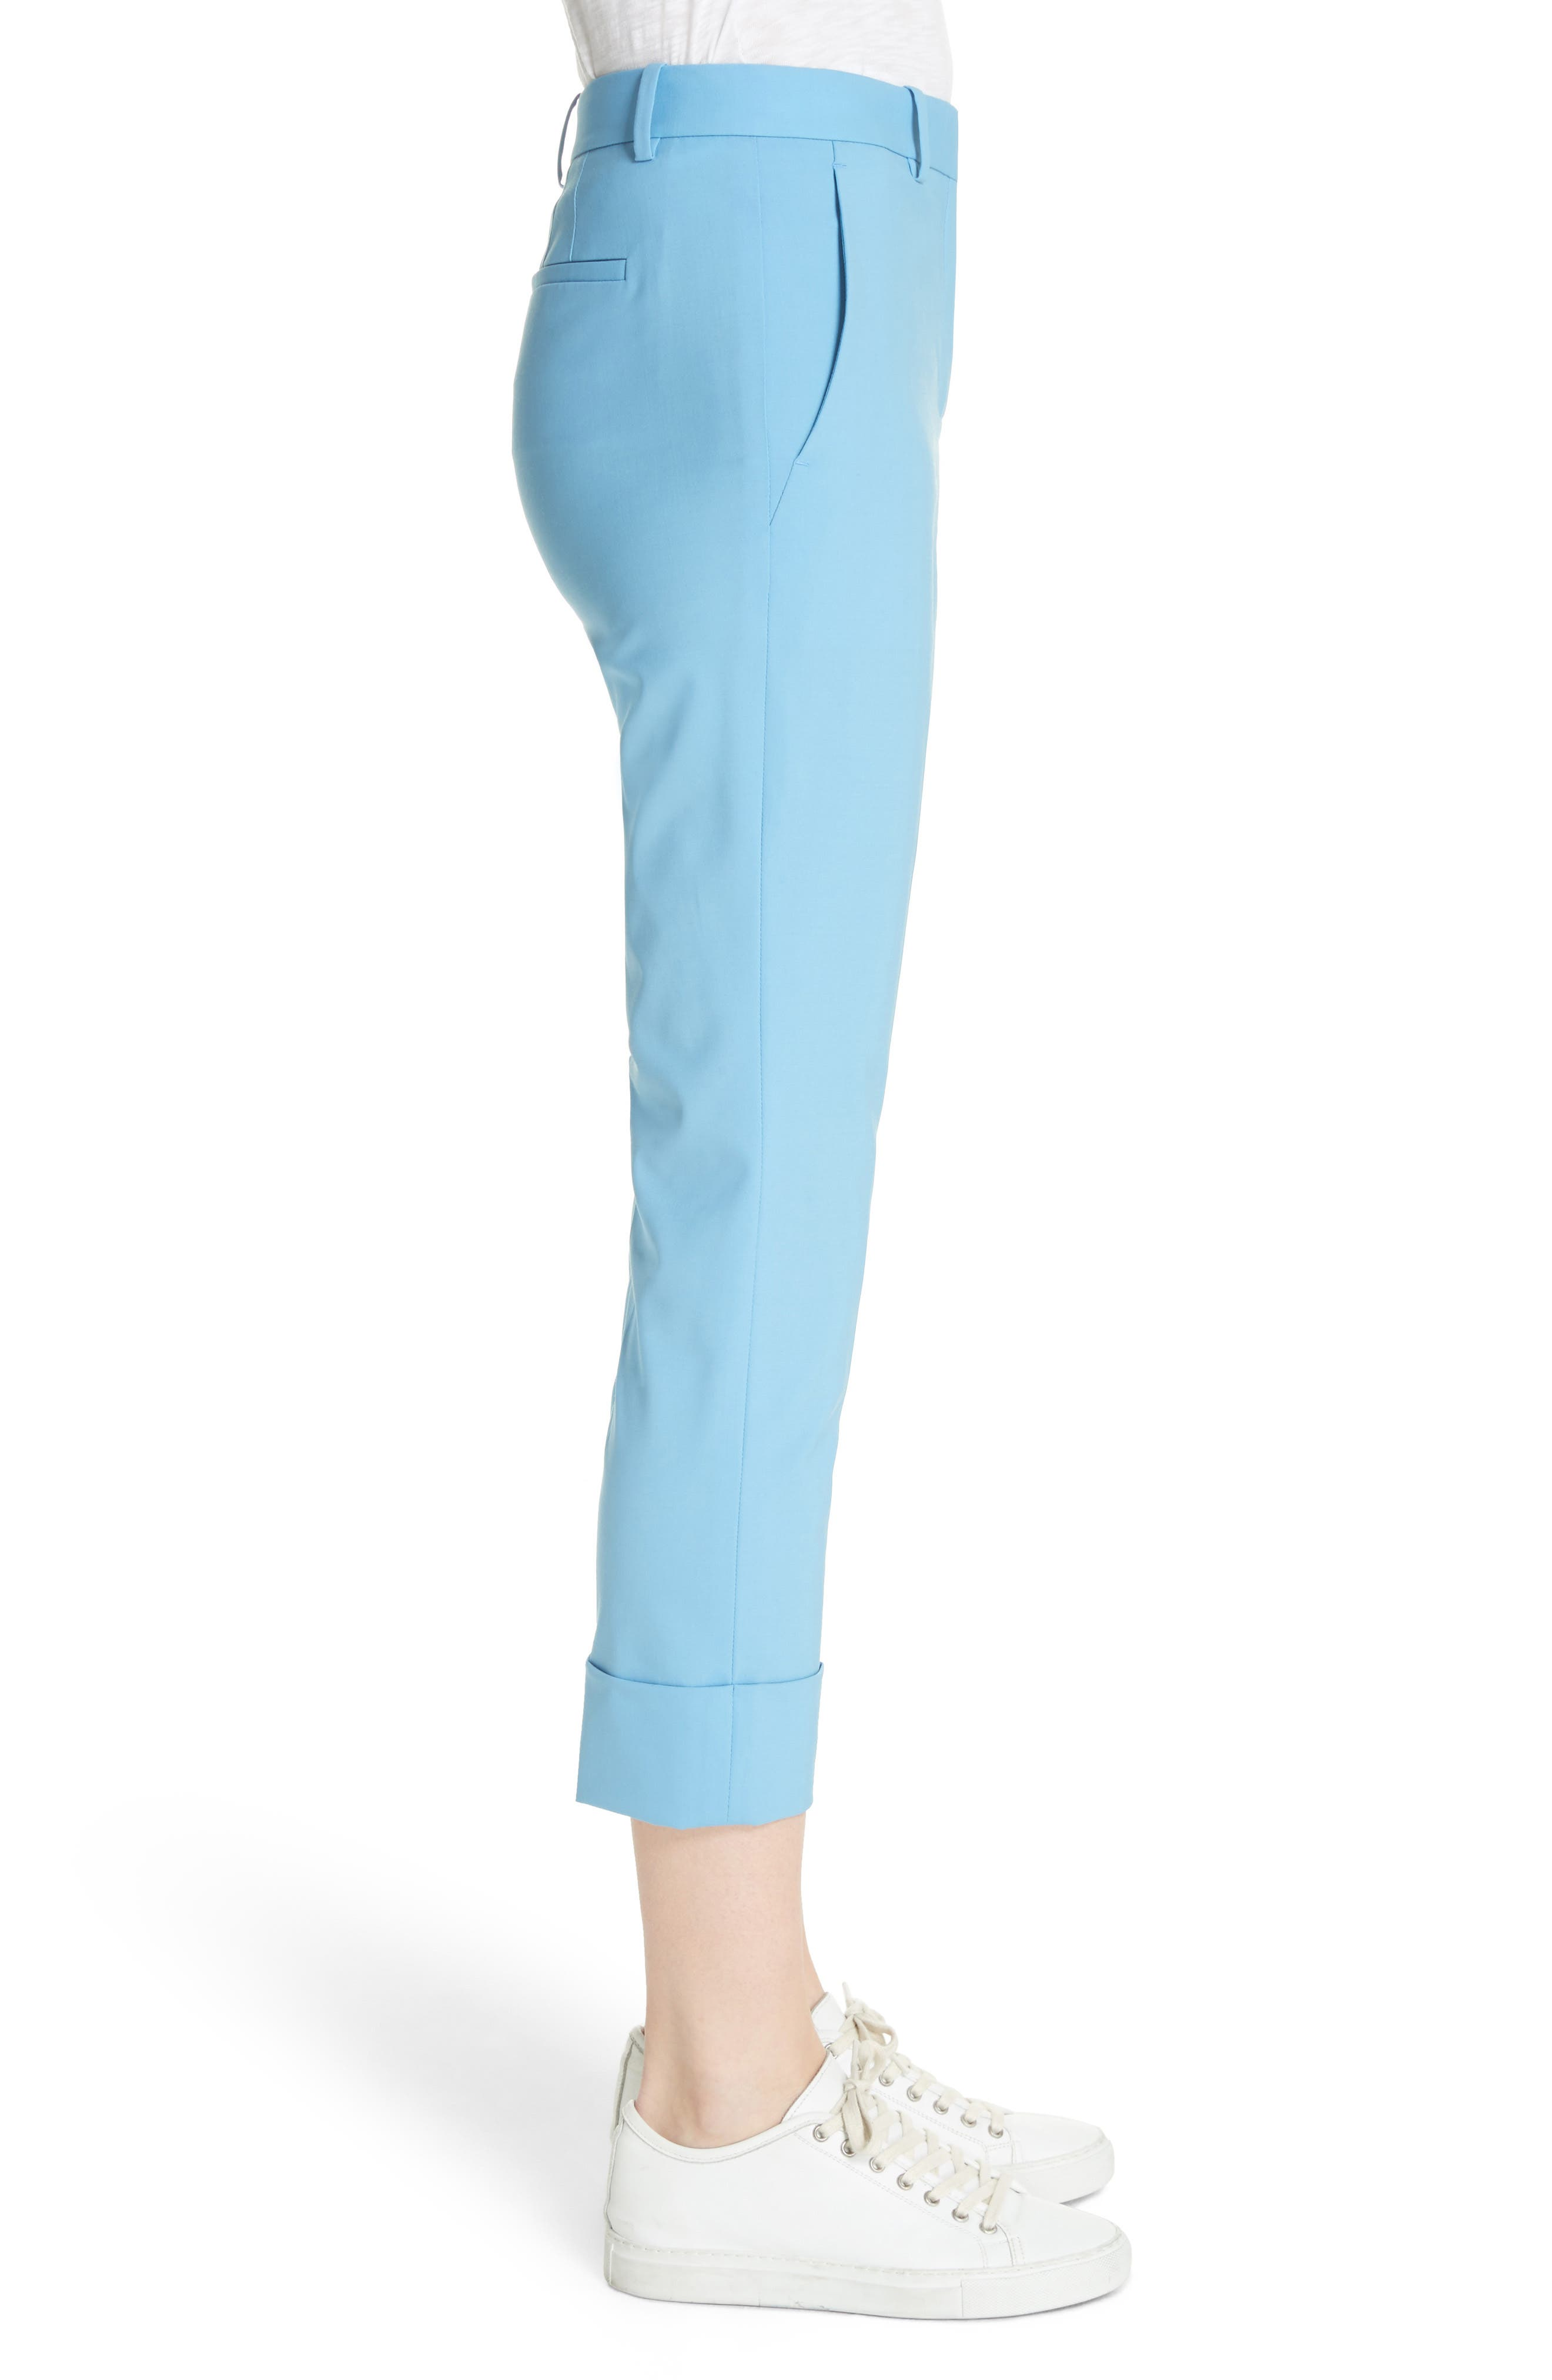 Cuffed Stretch Wool Crop Pants,                             Alternate thumbnail 3, color,                             Blue Robin